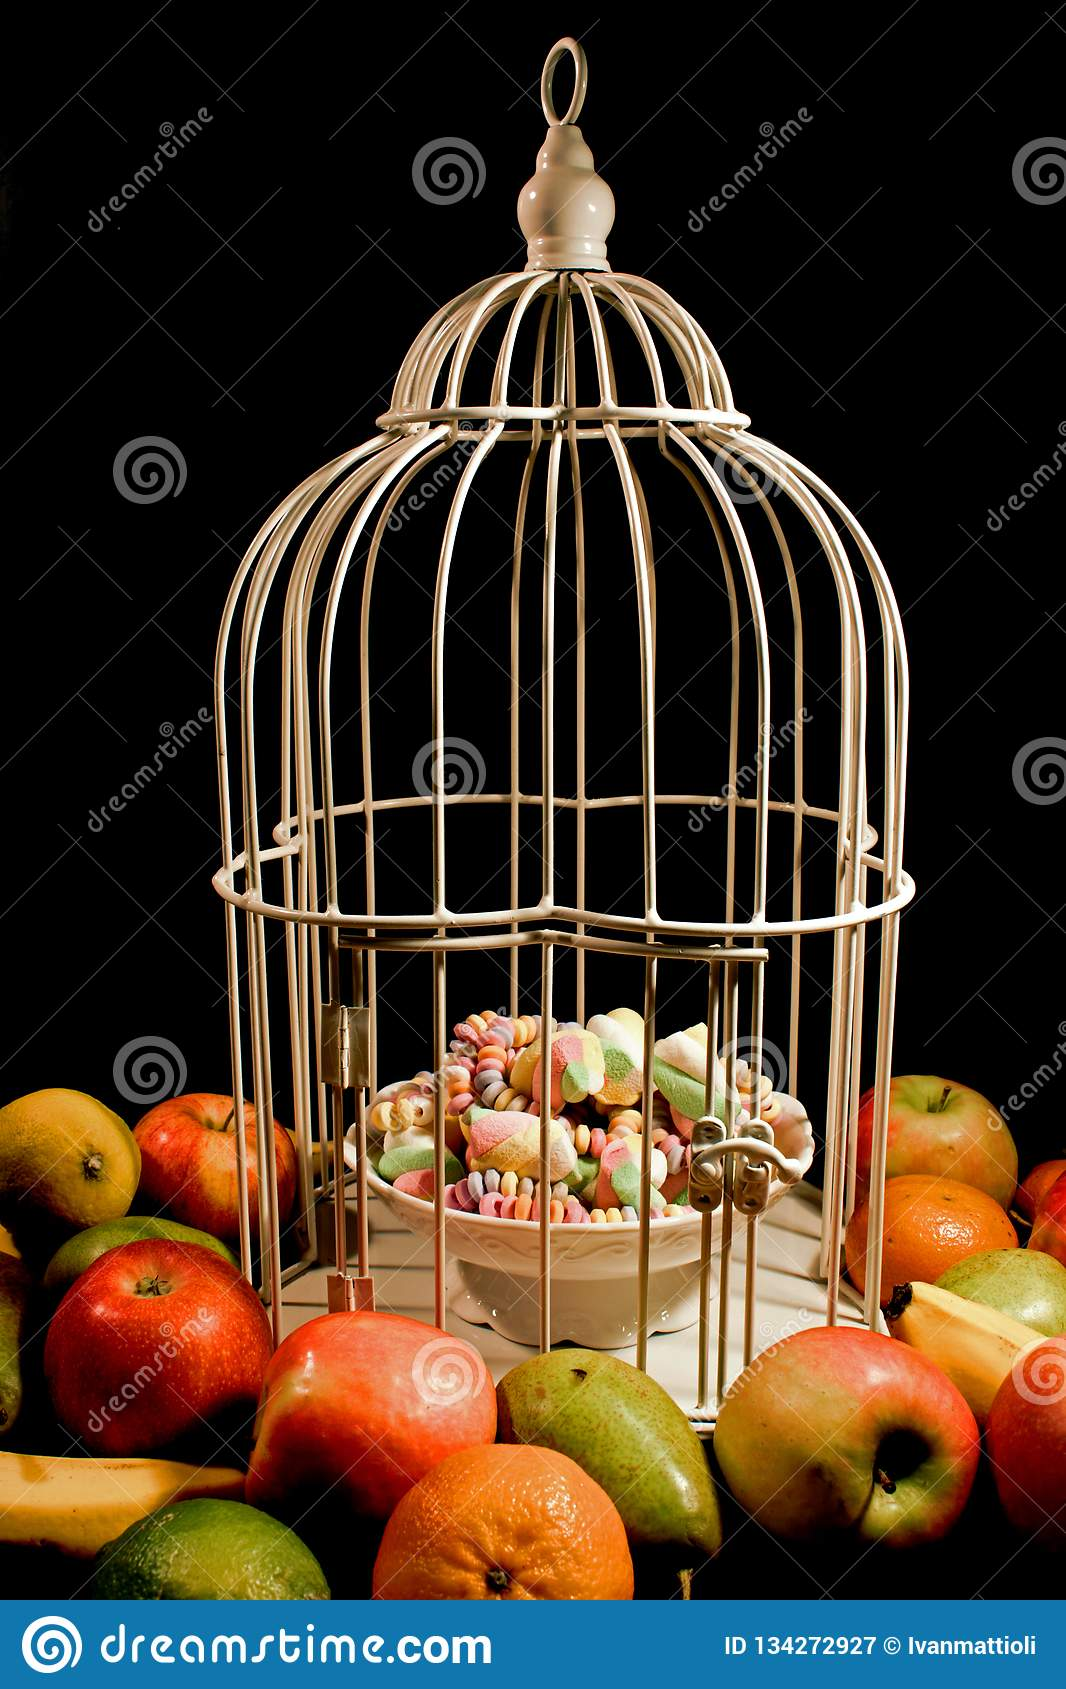 Fruits surrounding a cage with sweets enclosed